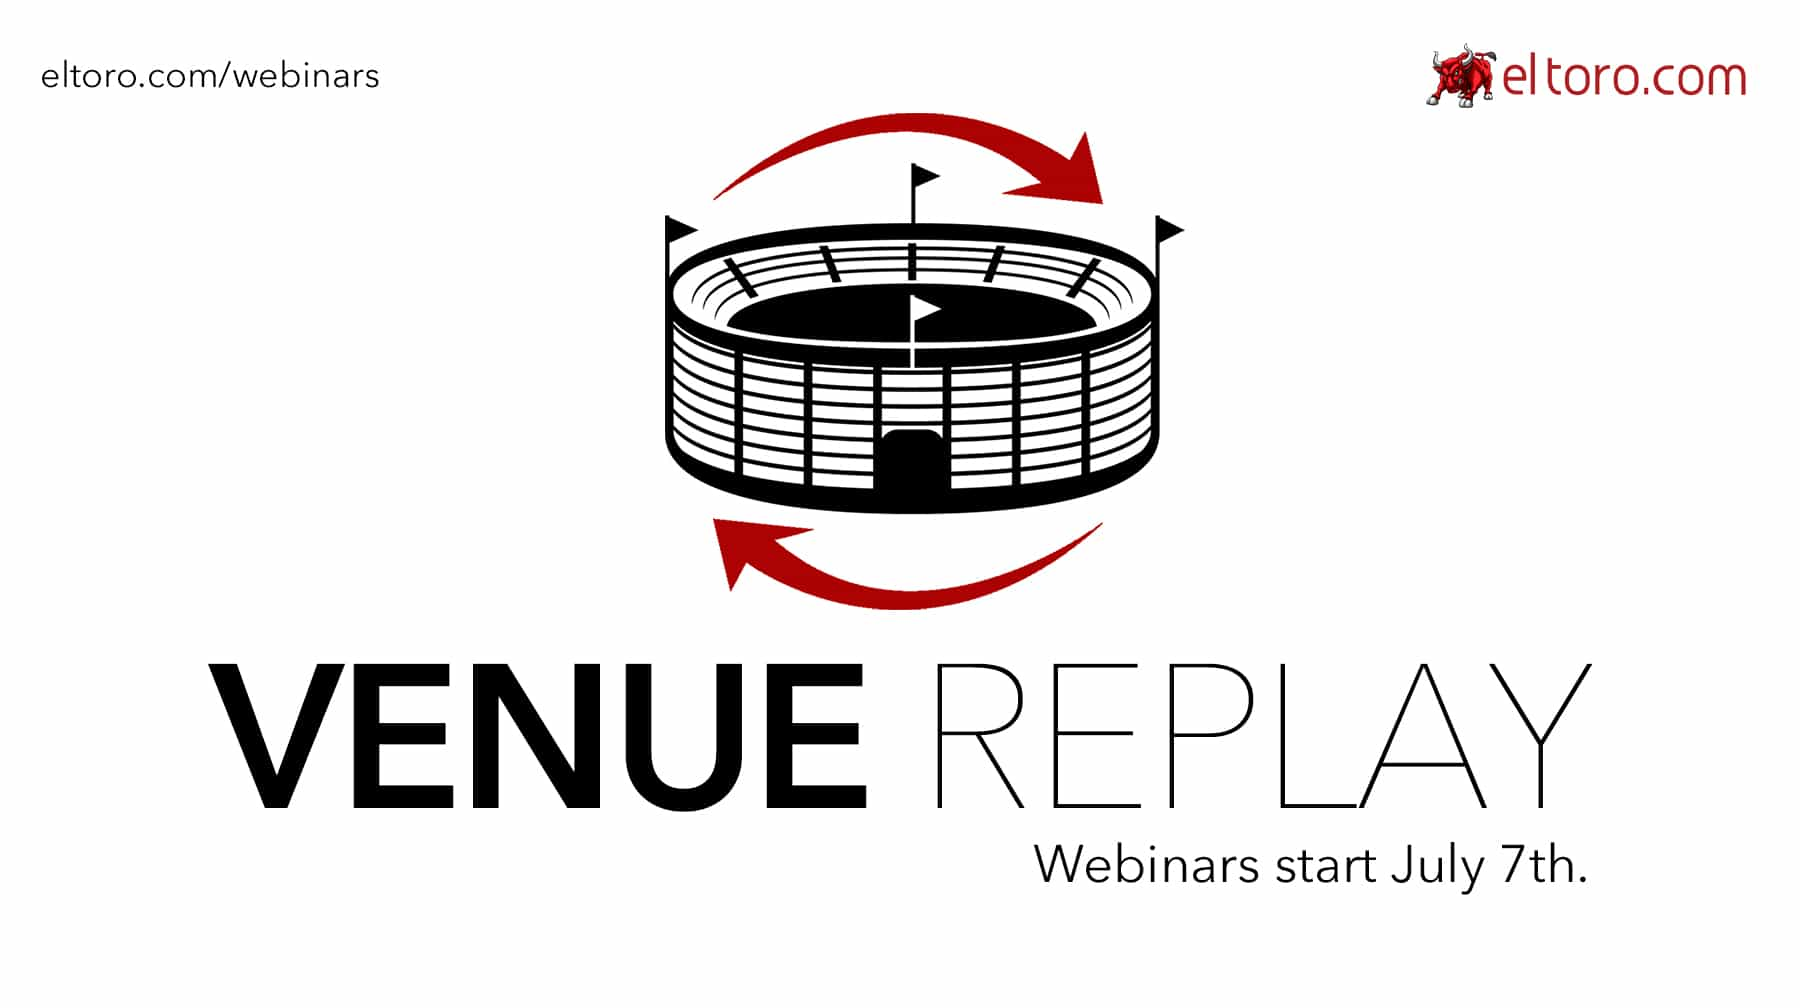 El Toro Launches New Venue Replay Webinars